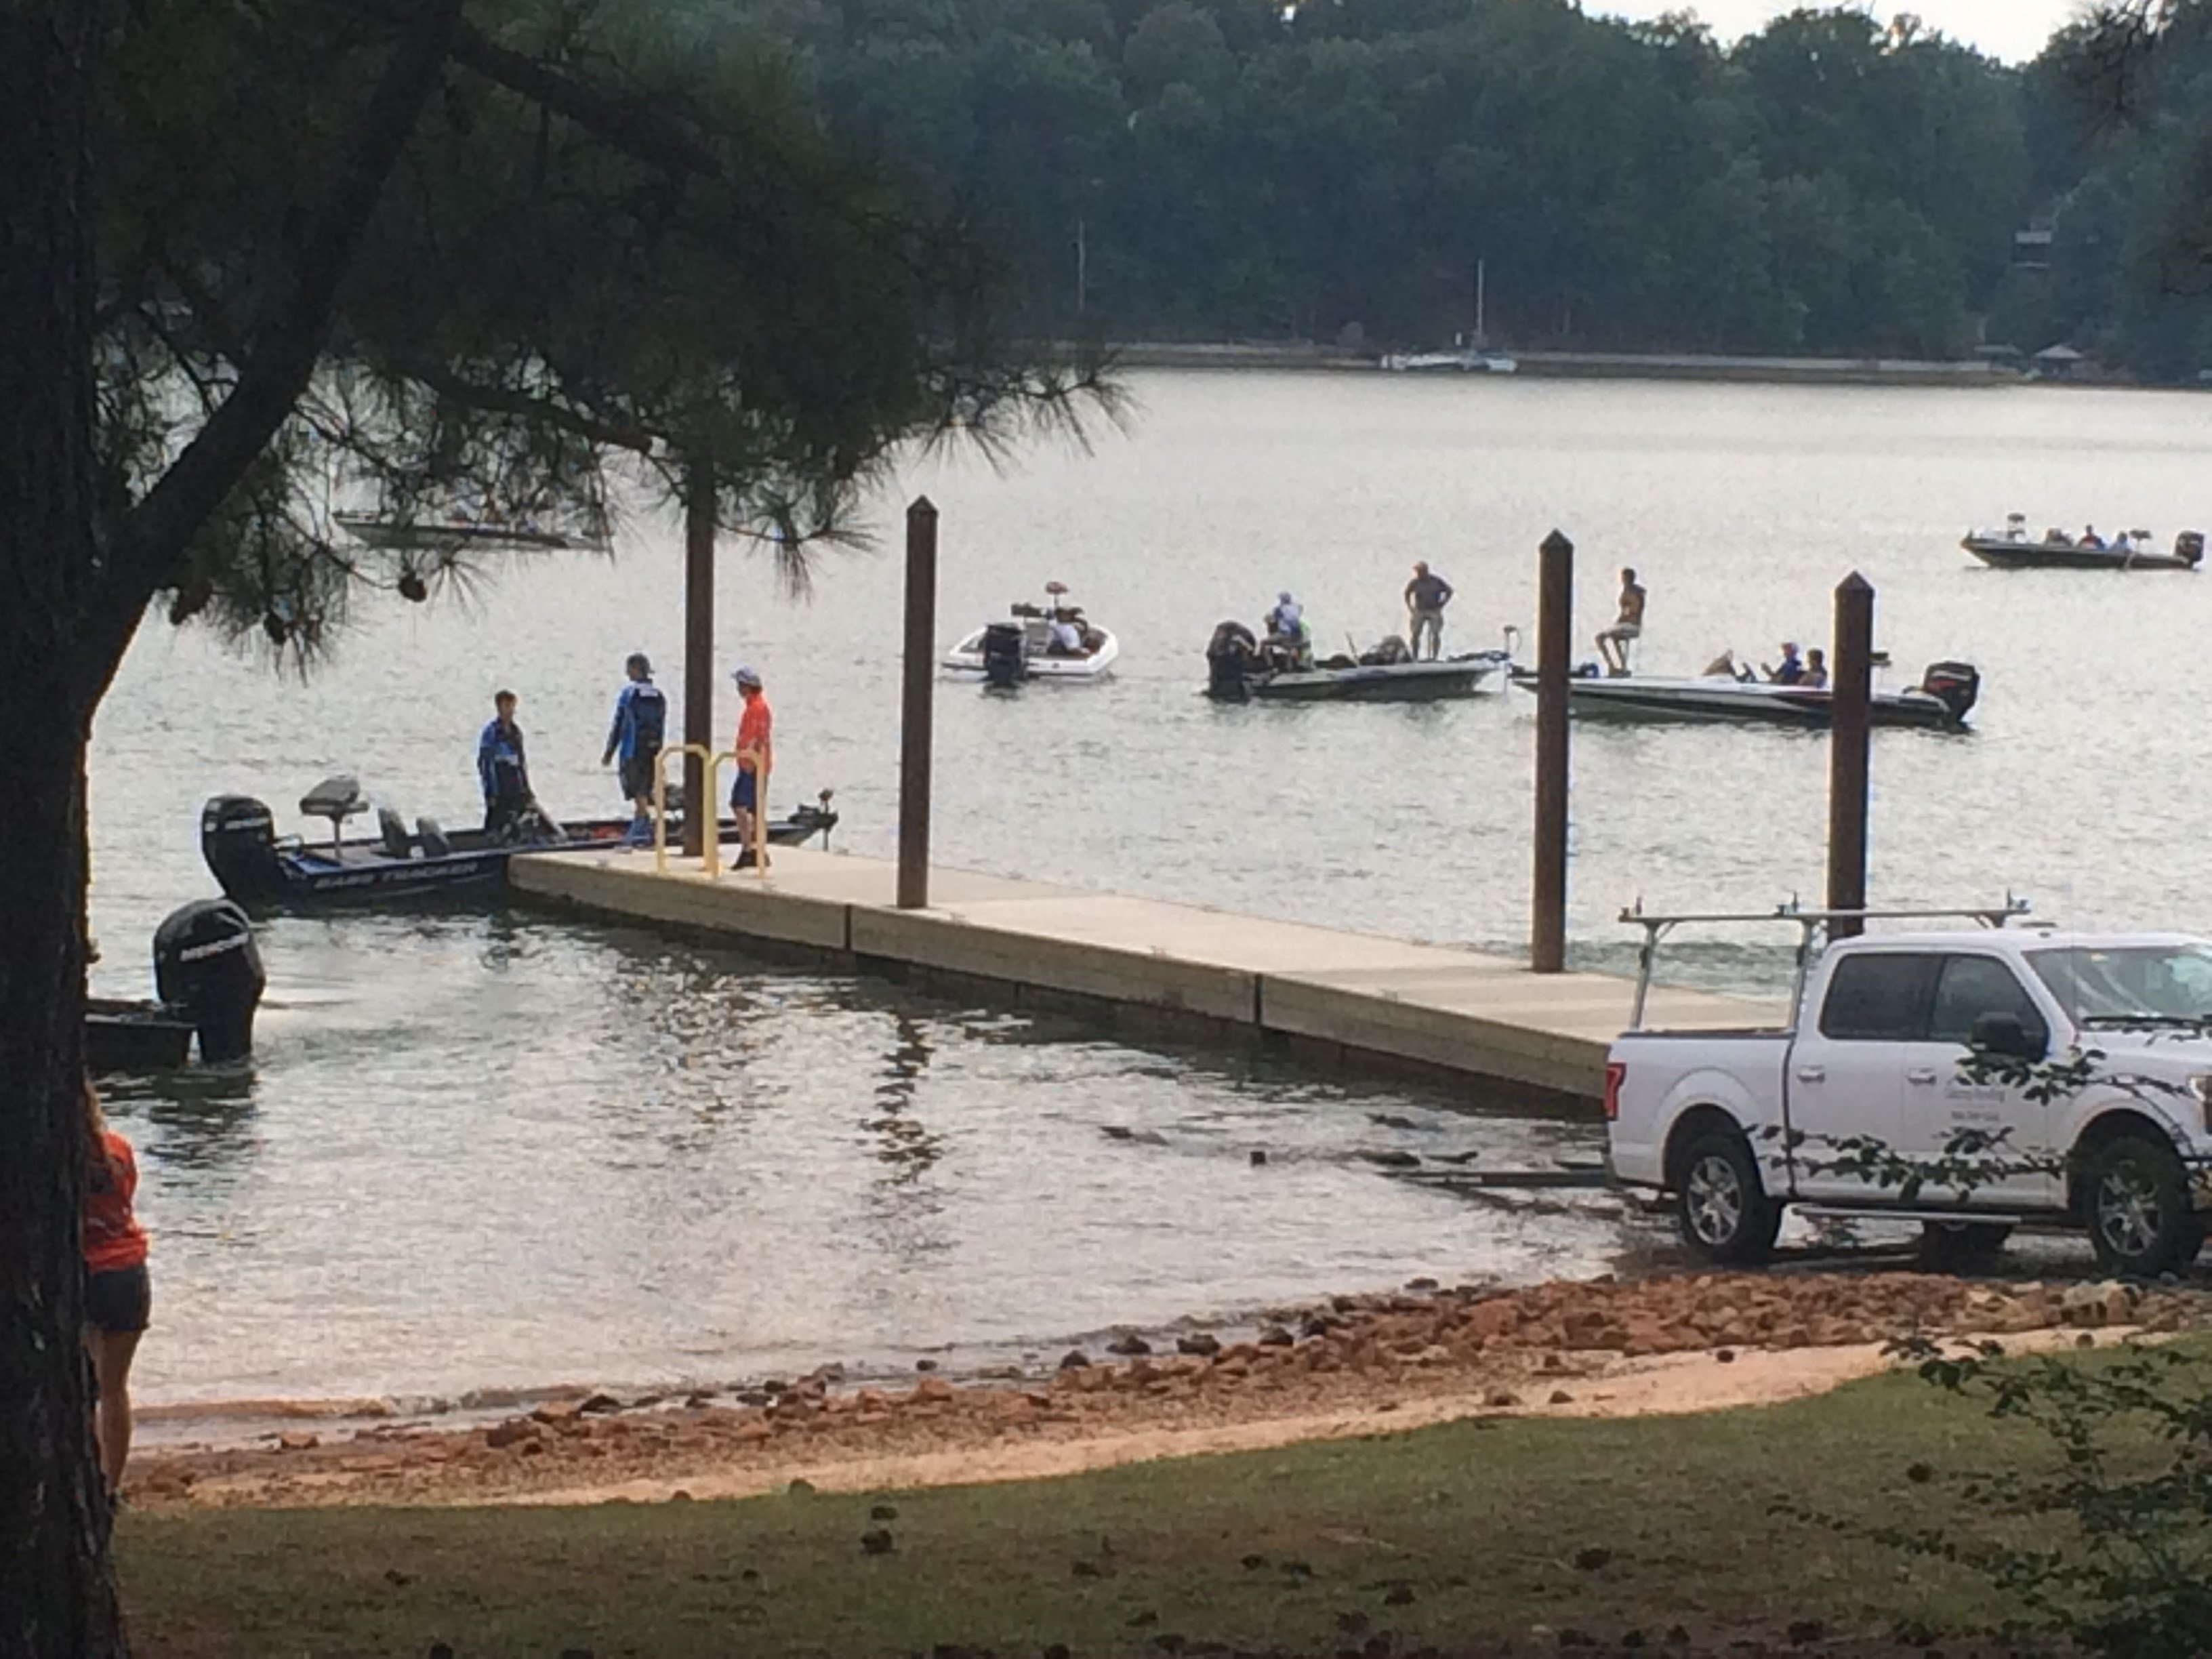 Anglers hit water for bass fishing tournament on lake for Lake keowee fishing